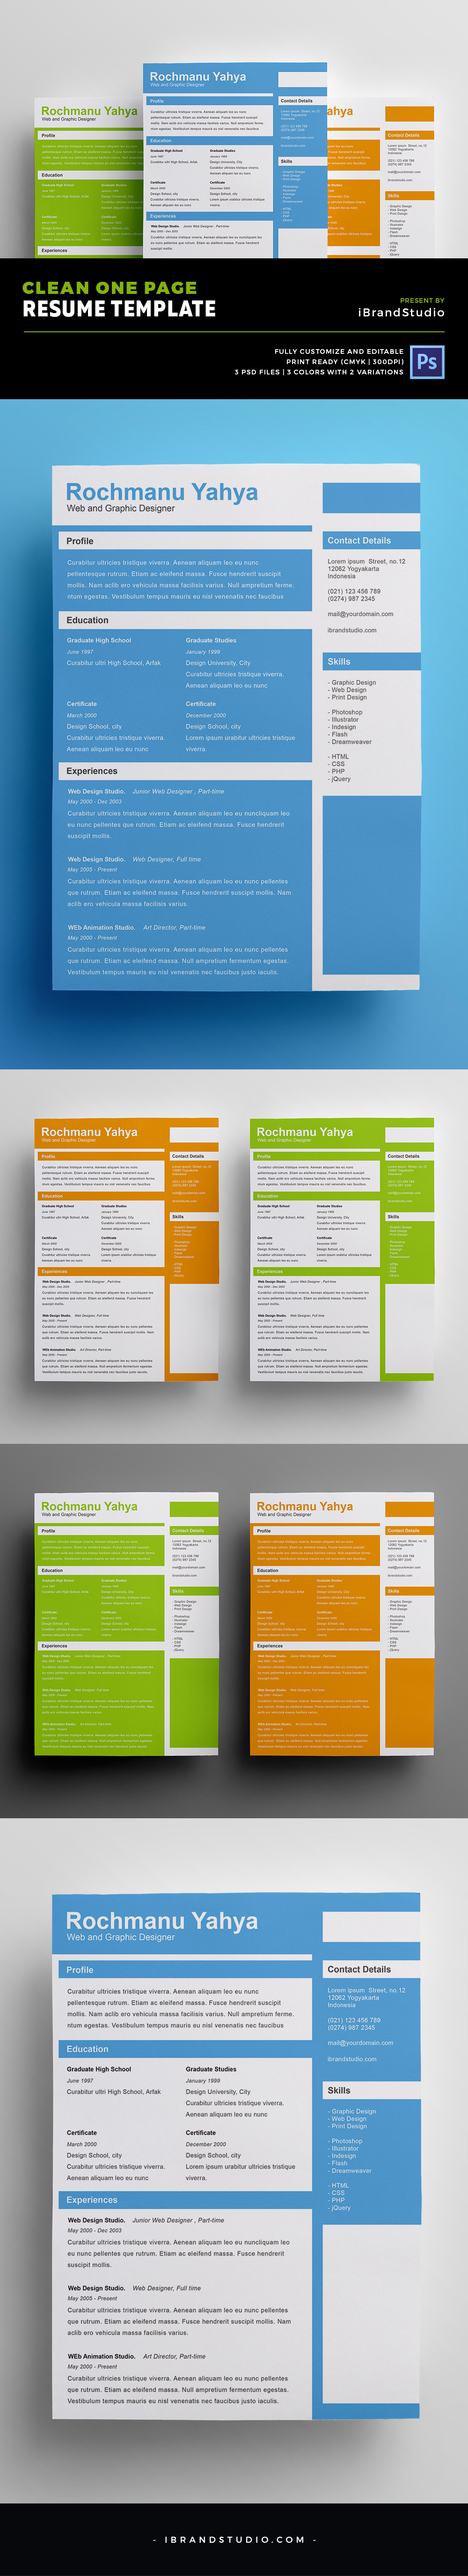 Free Clean One Page Resume PSD Template